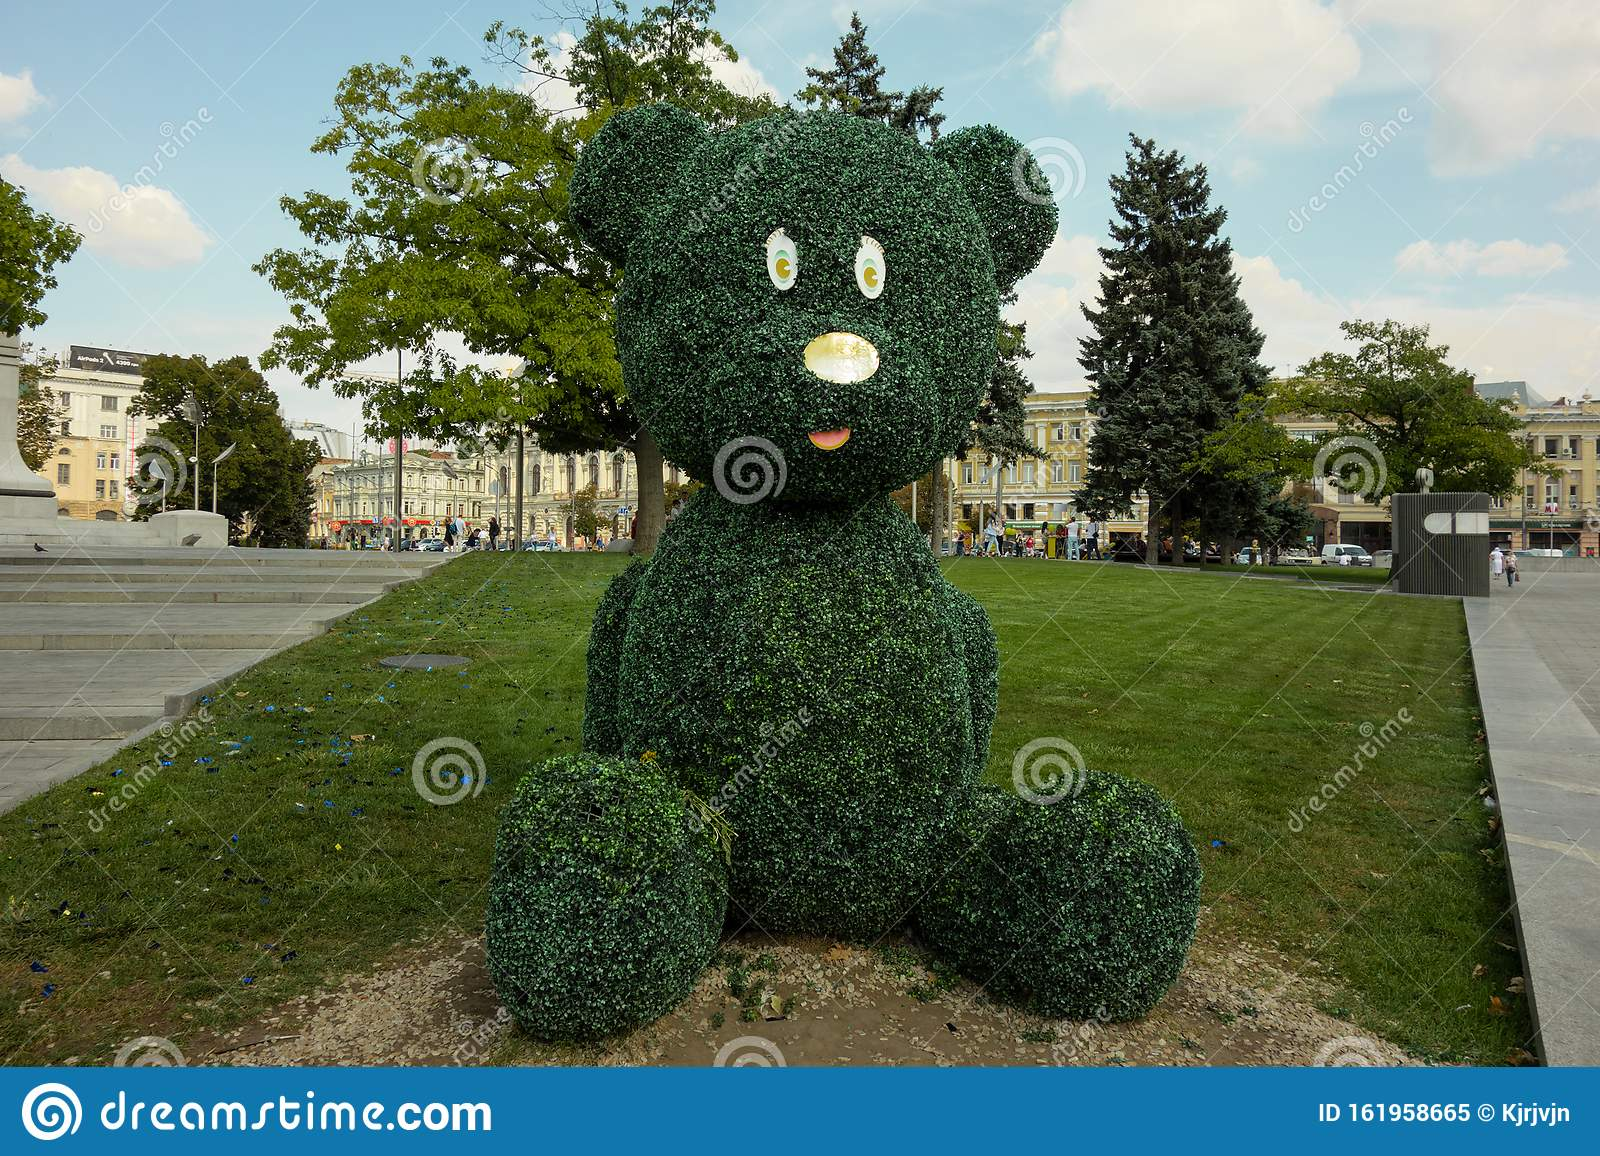 Kharkiv Ukraine August 2019 Big Teddy Bear Topiary Figure In City Park Outdoor Fun Decoration From Green Plant And Bushes Kids Editorial Image Image Of Green Ornamental 161958665